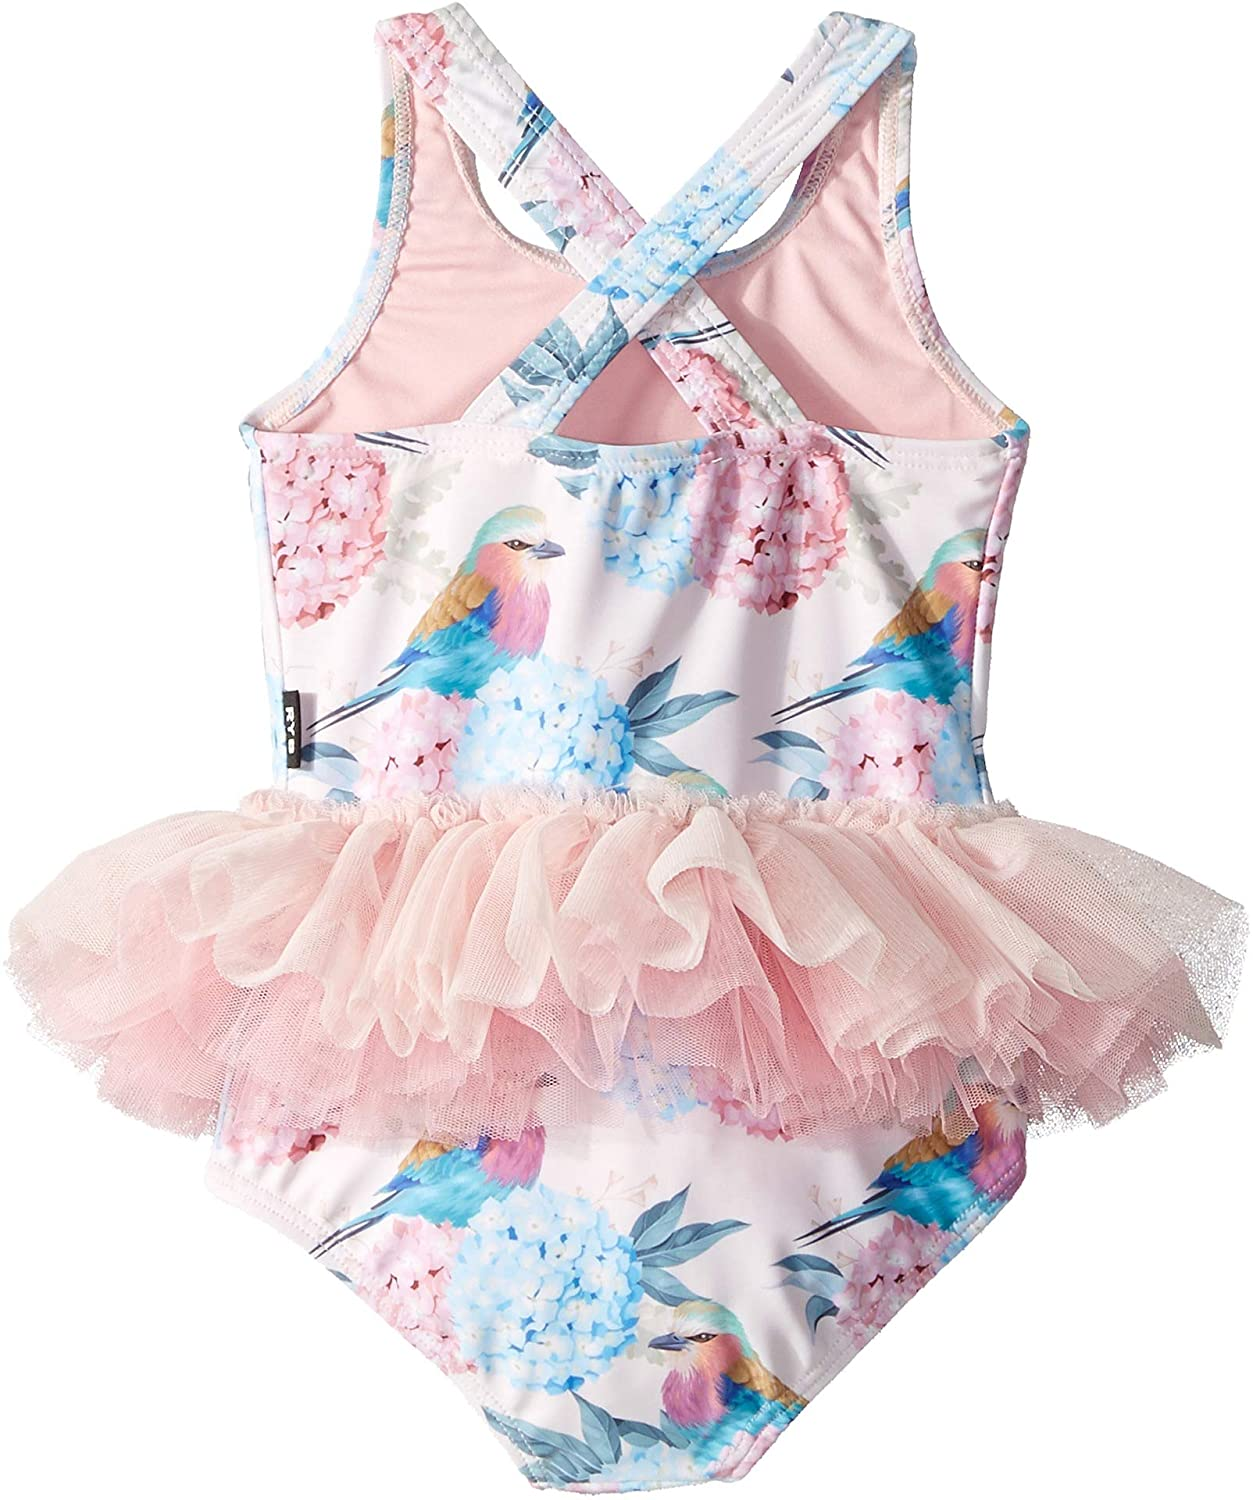 44368c2ab5dcc Amazon.com: Rock Your Baby Baby Girl's Birdie Tulle One-Piece (Infant):  Clothing